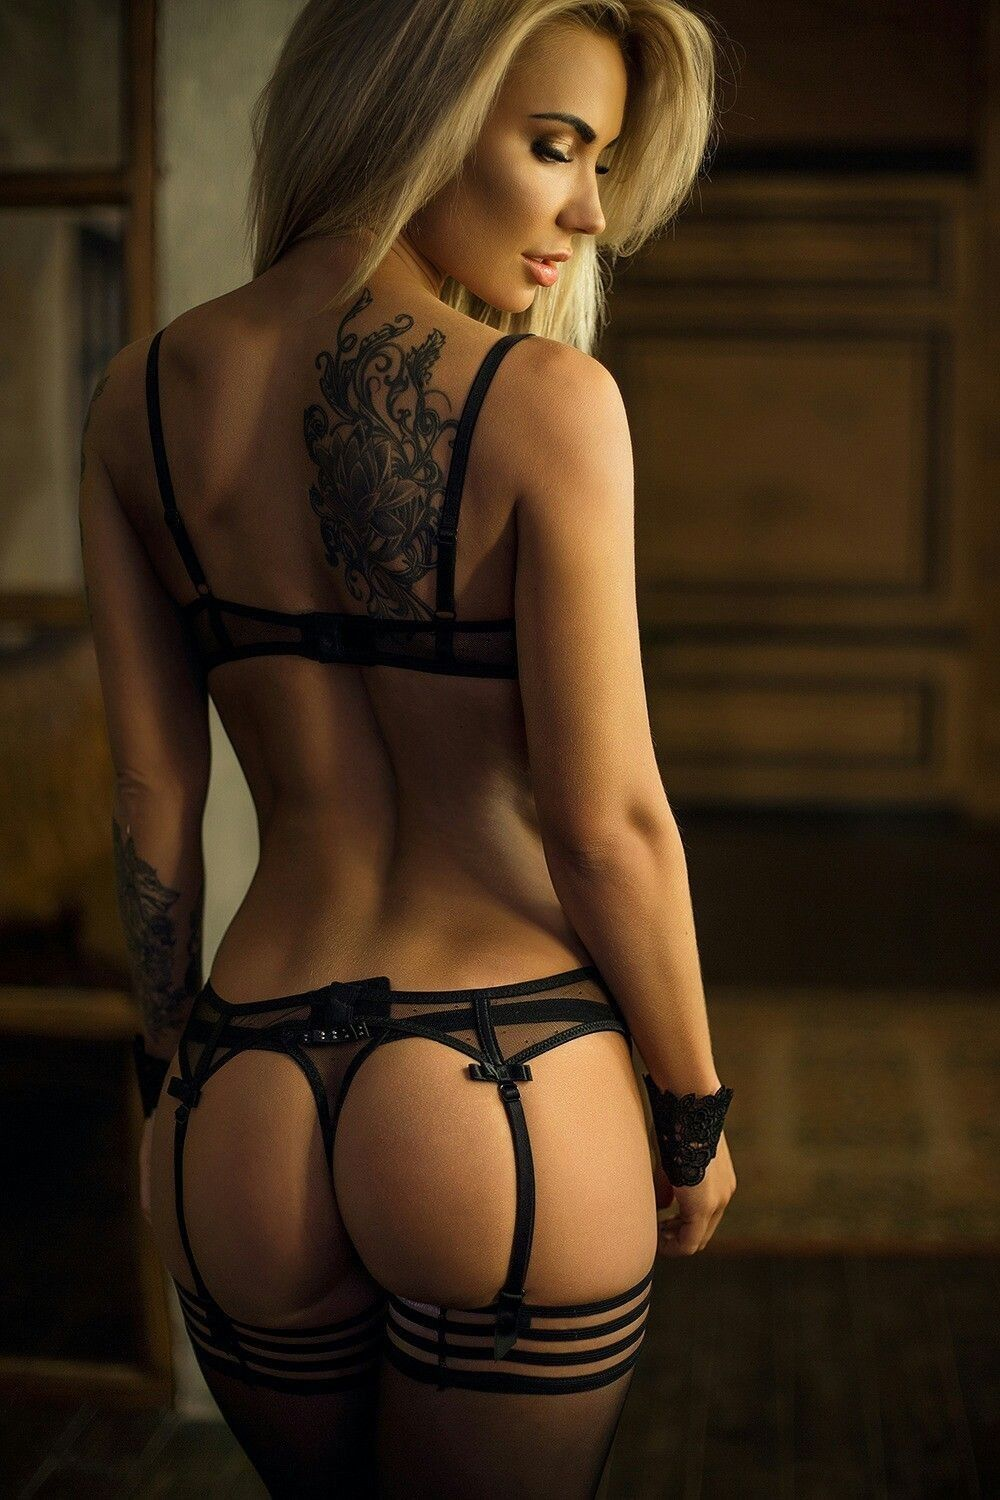 Something Hot lingerie butt talented